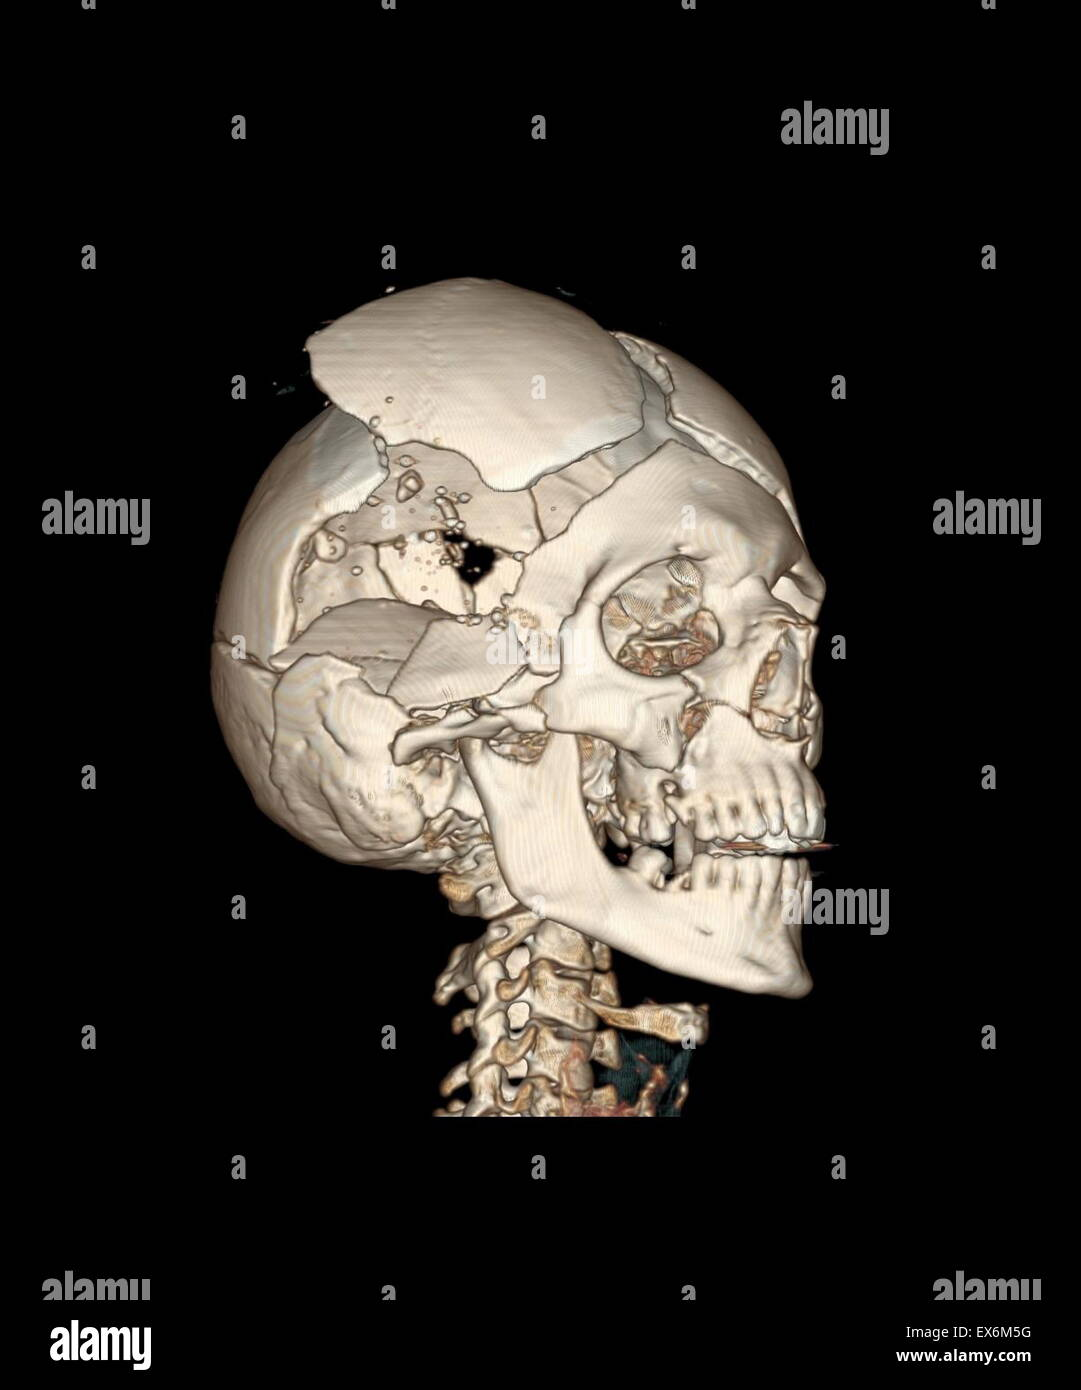 right anterior view of a three-dimensional CT reconstruction of the bony skull with bullet wounds shows the hole - Stock Image